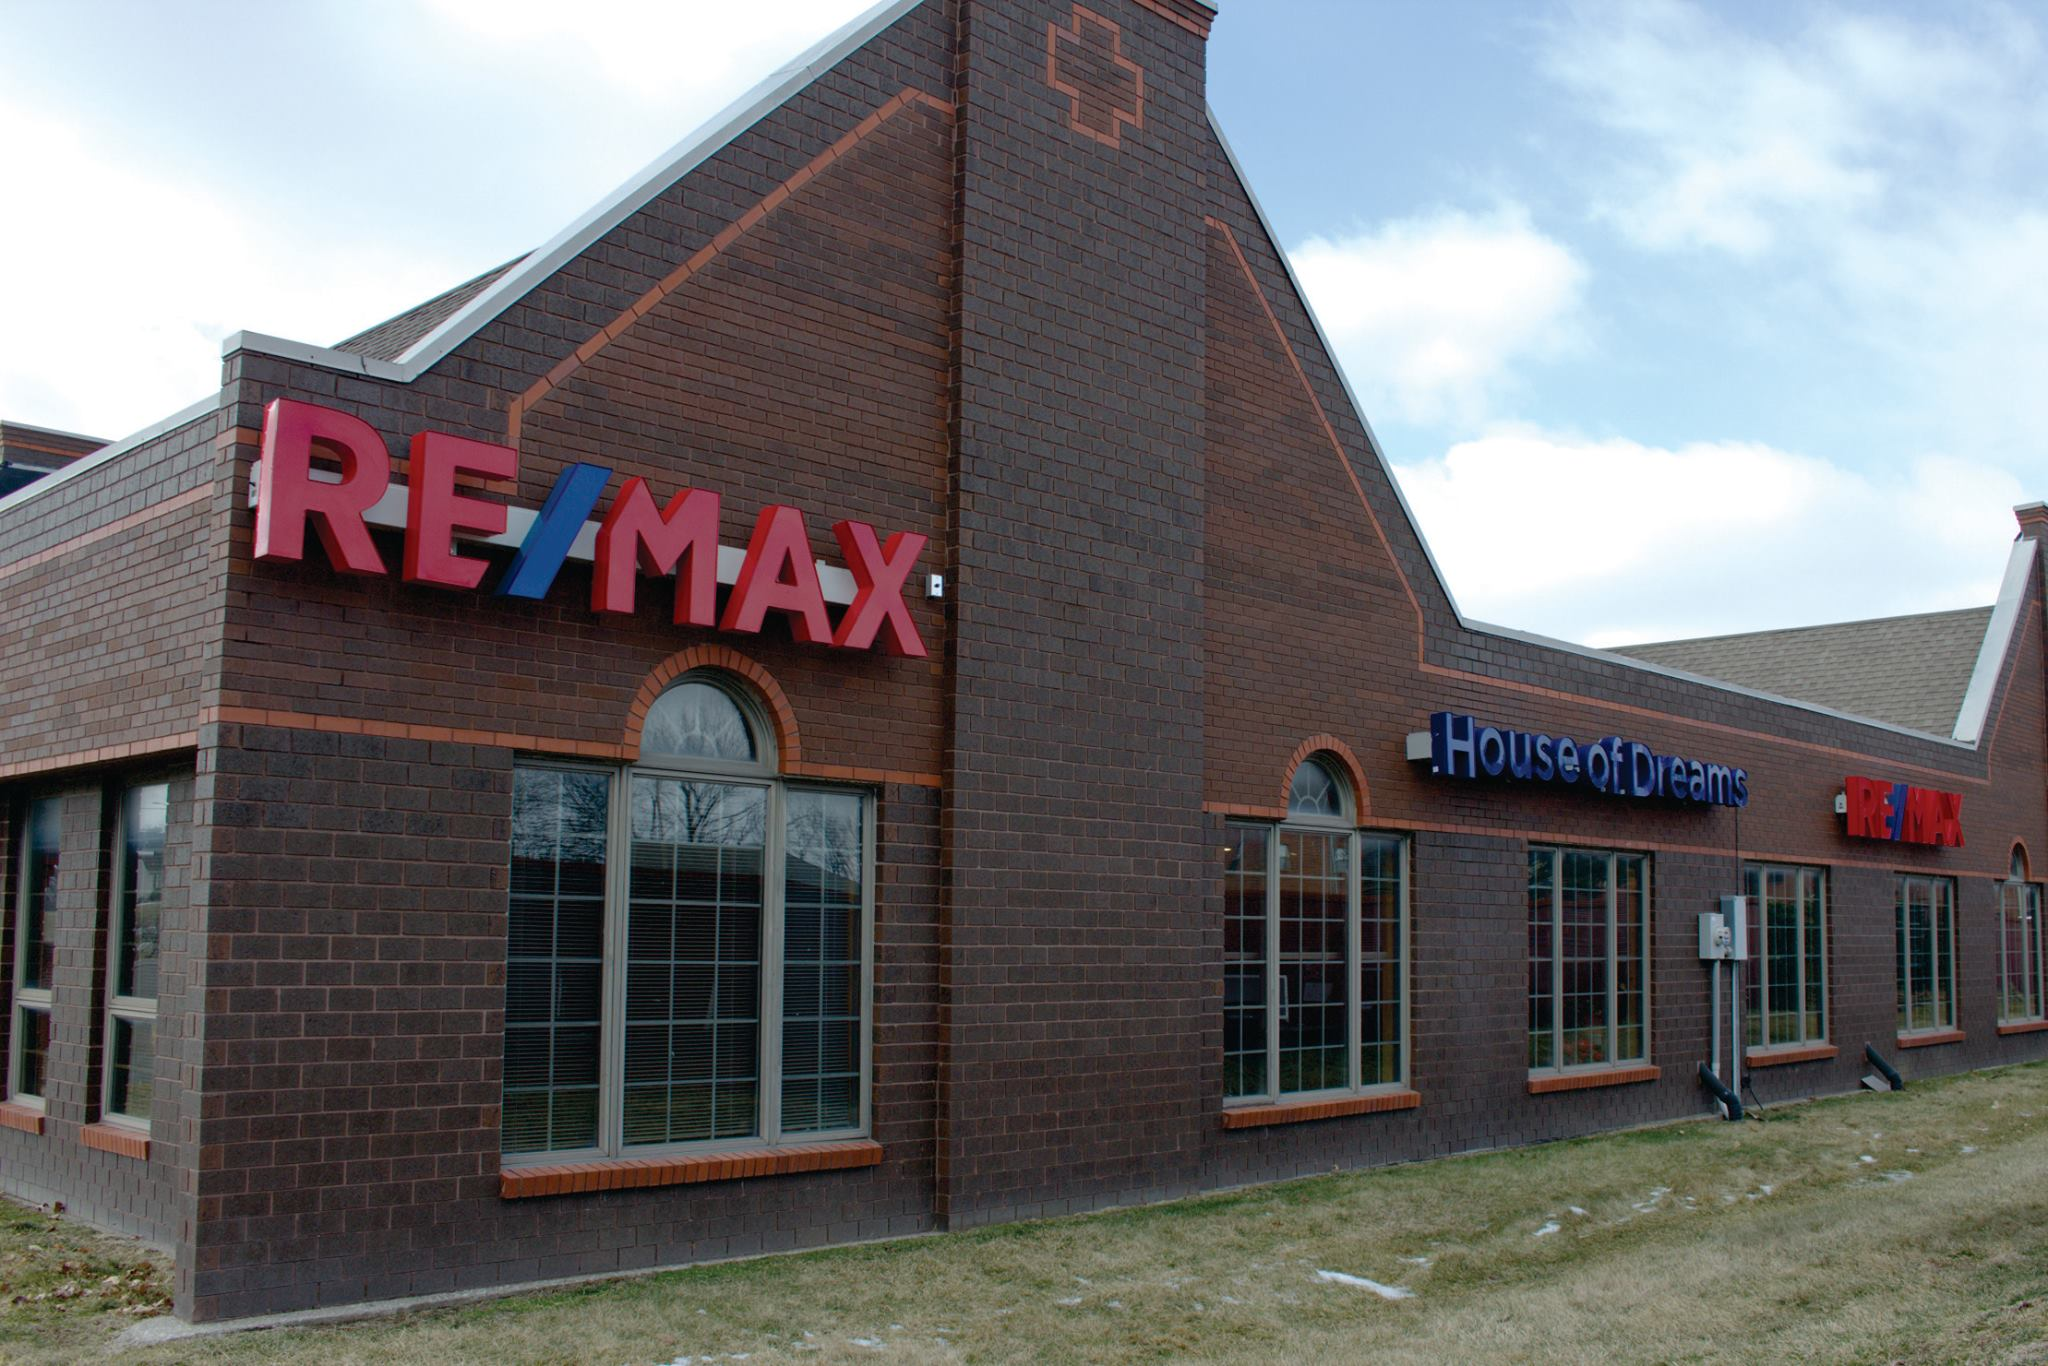 RE/MAX House of Dreams